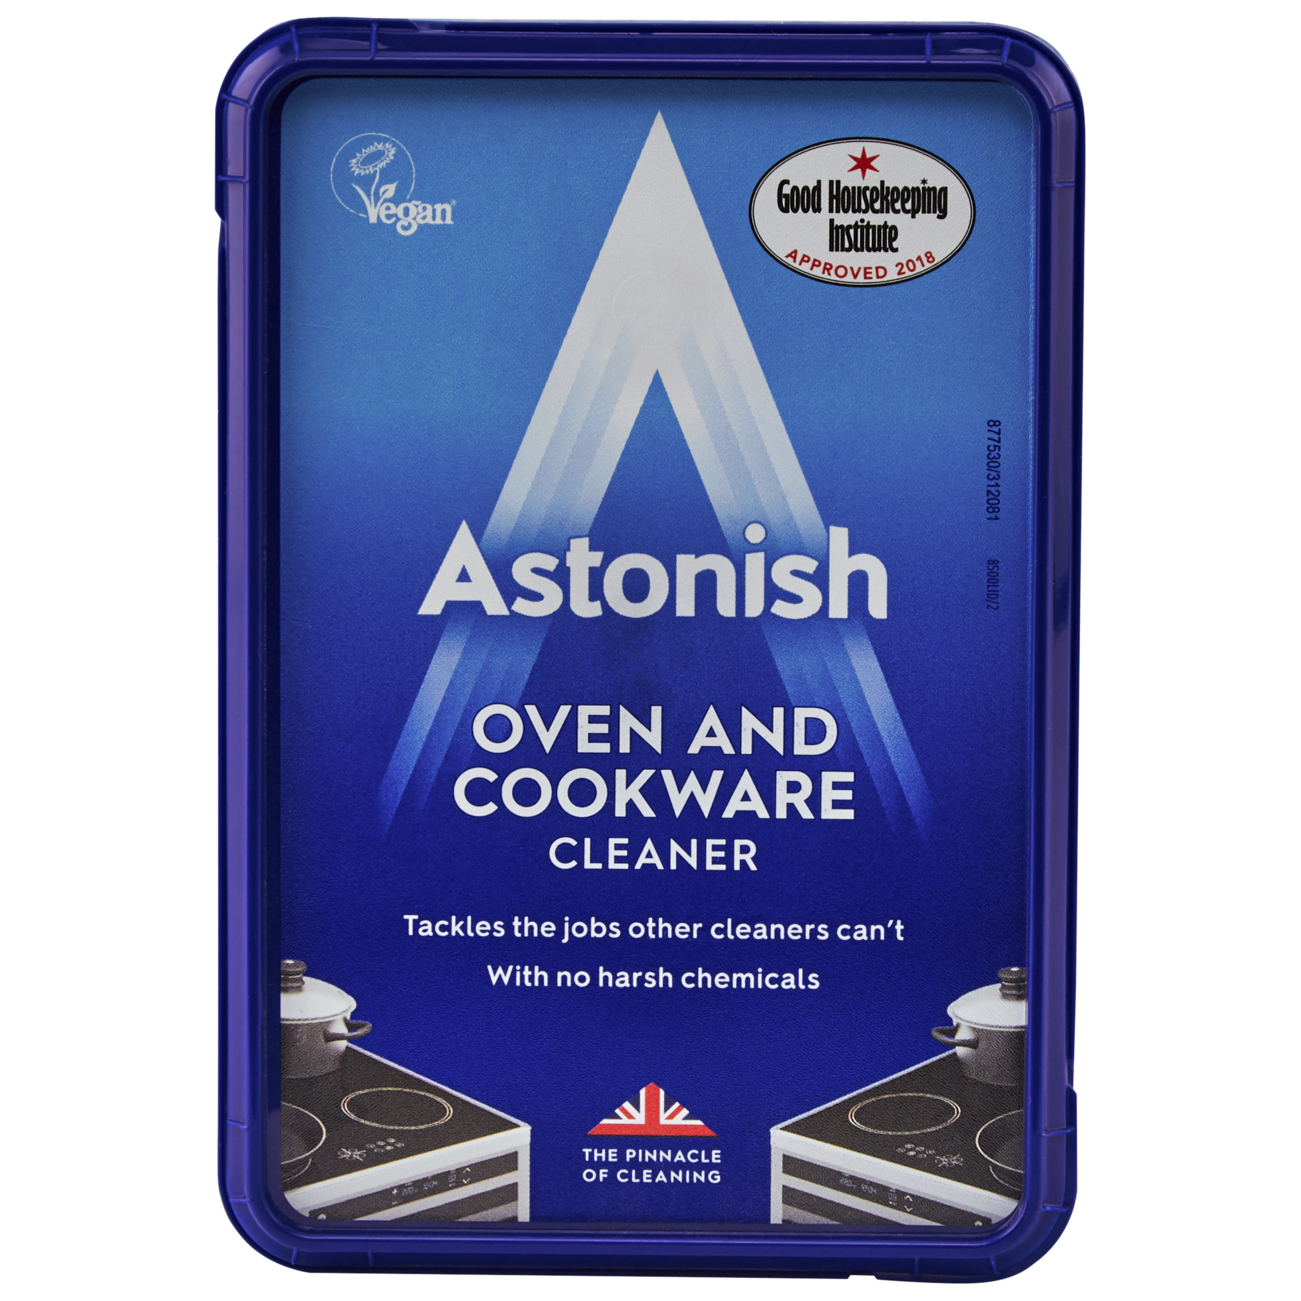 Astonish Oven & Cookwear Cleaner